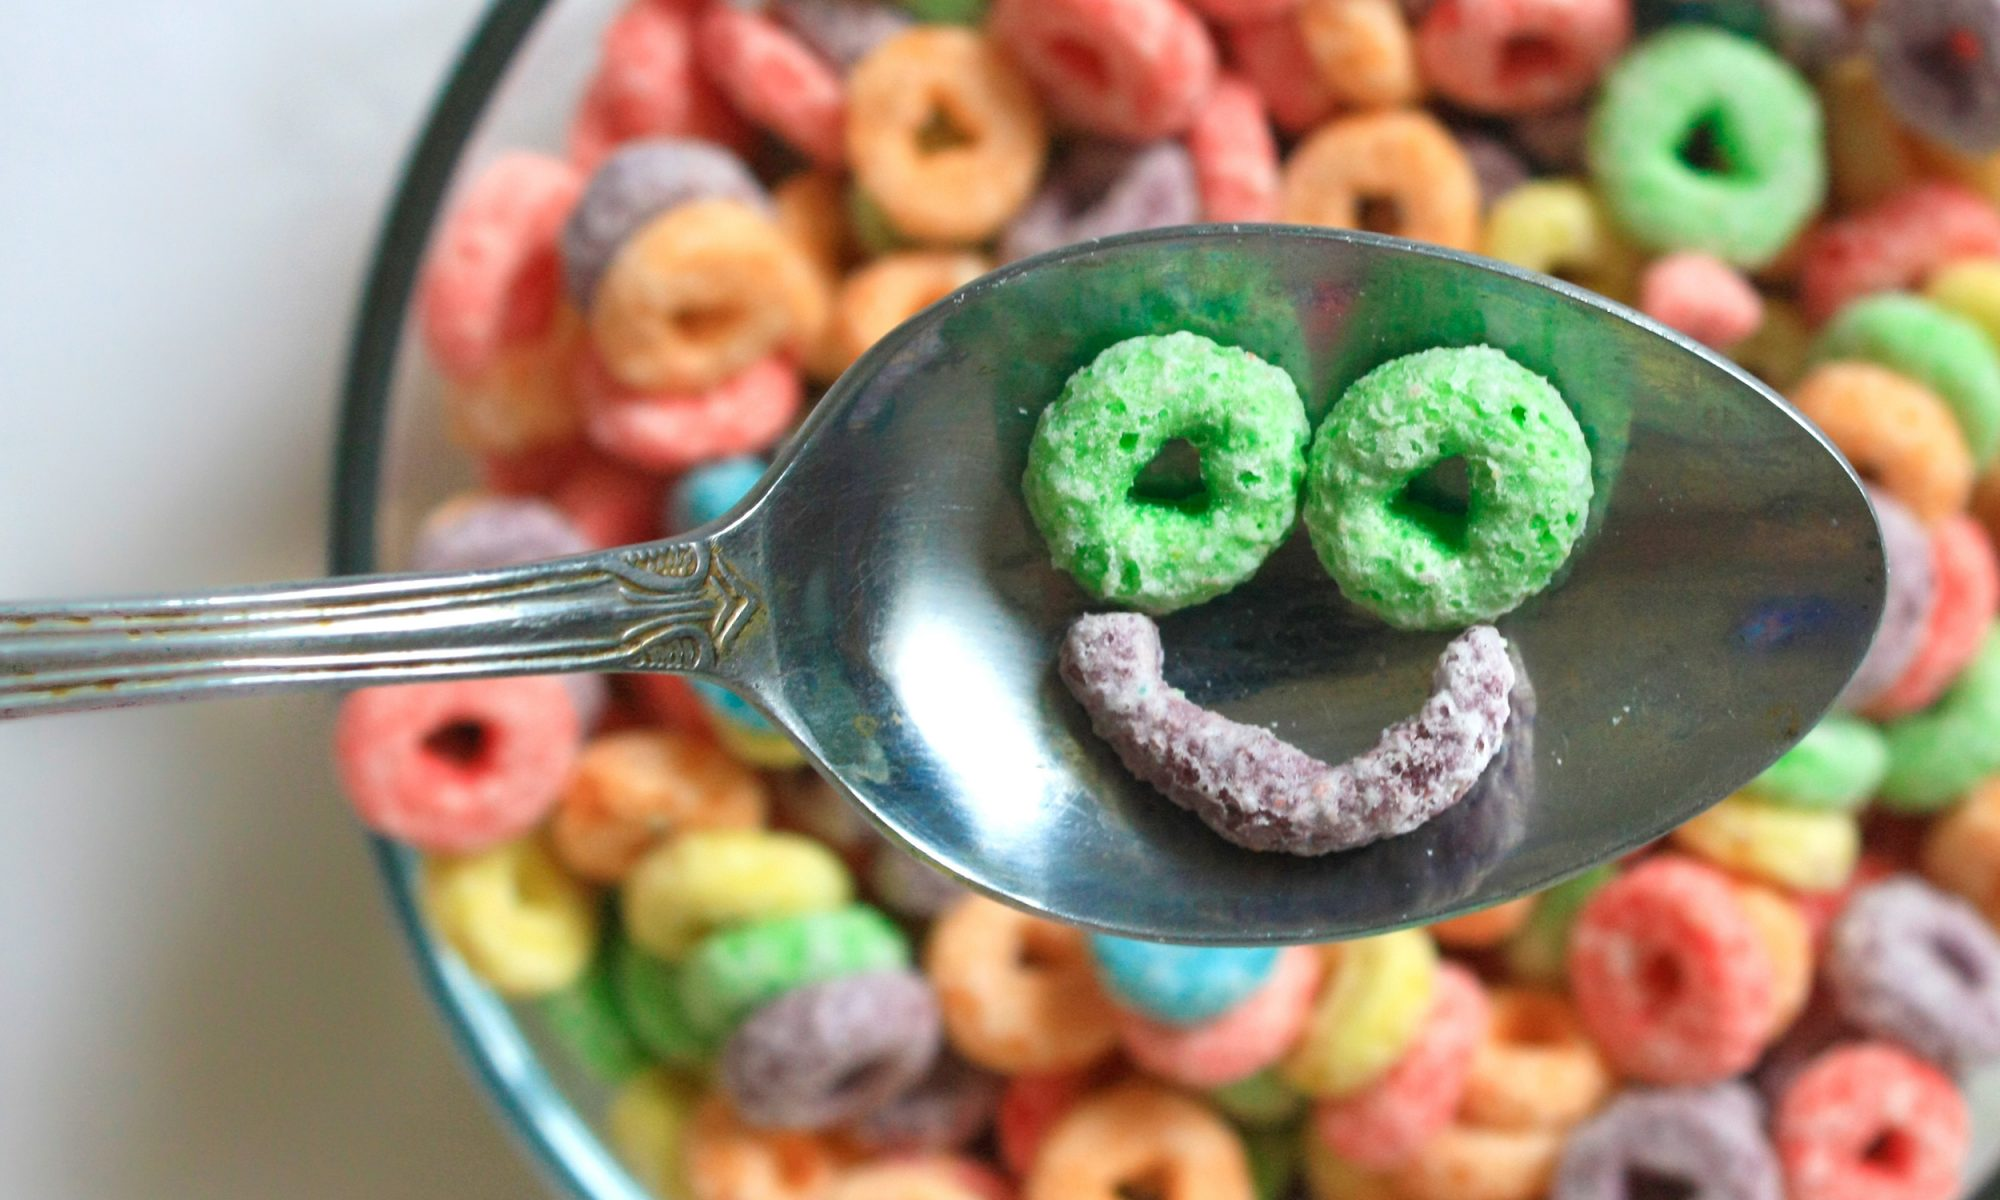 EC: Sugary Cereal (Probably) Won't Turn Your Children Into Monsters